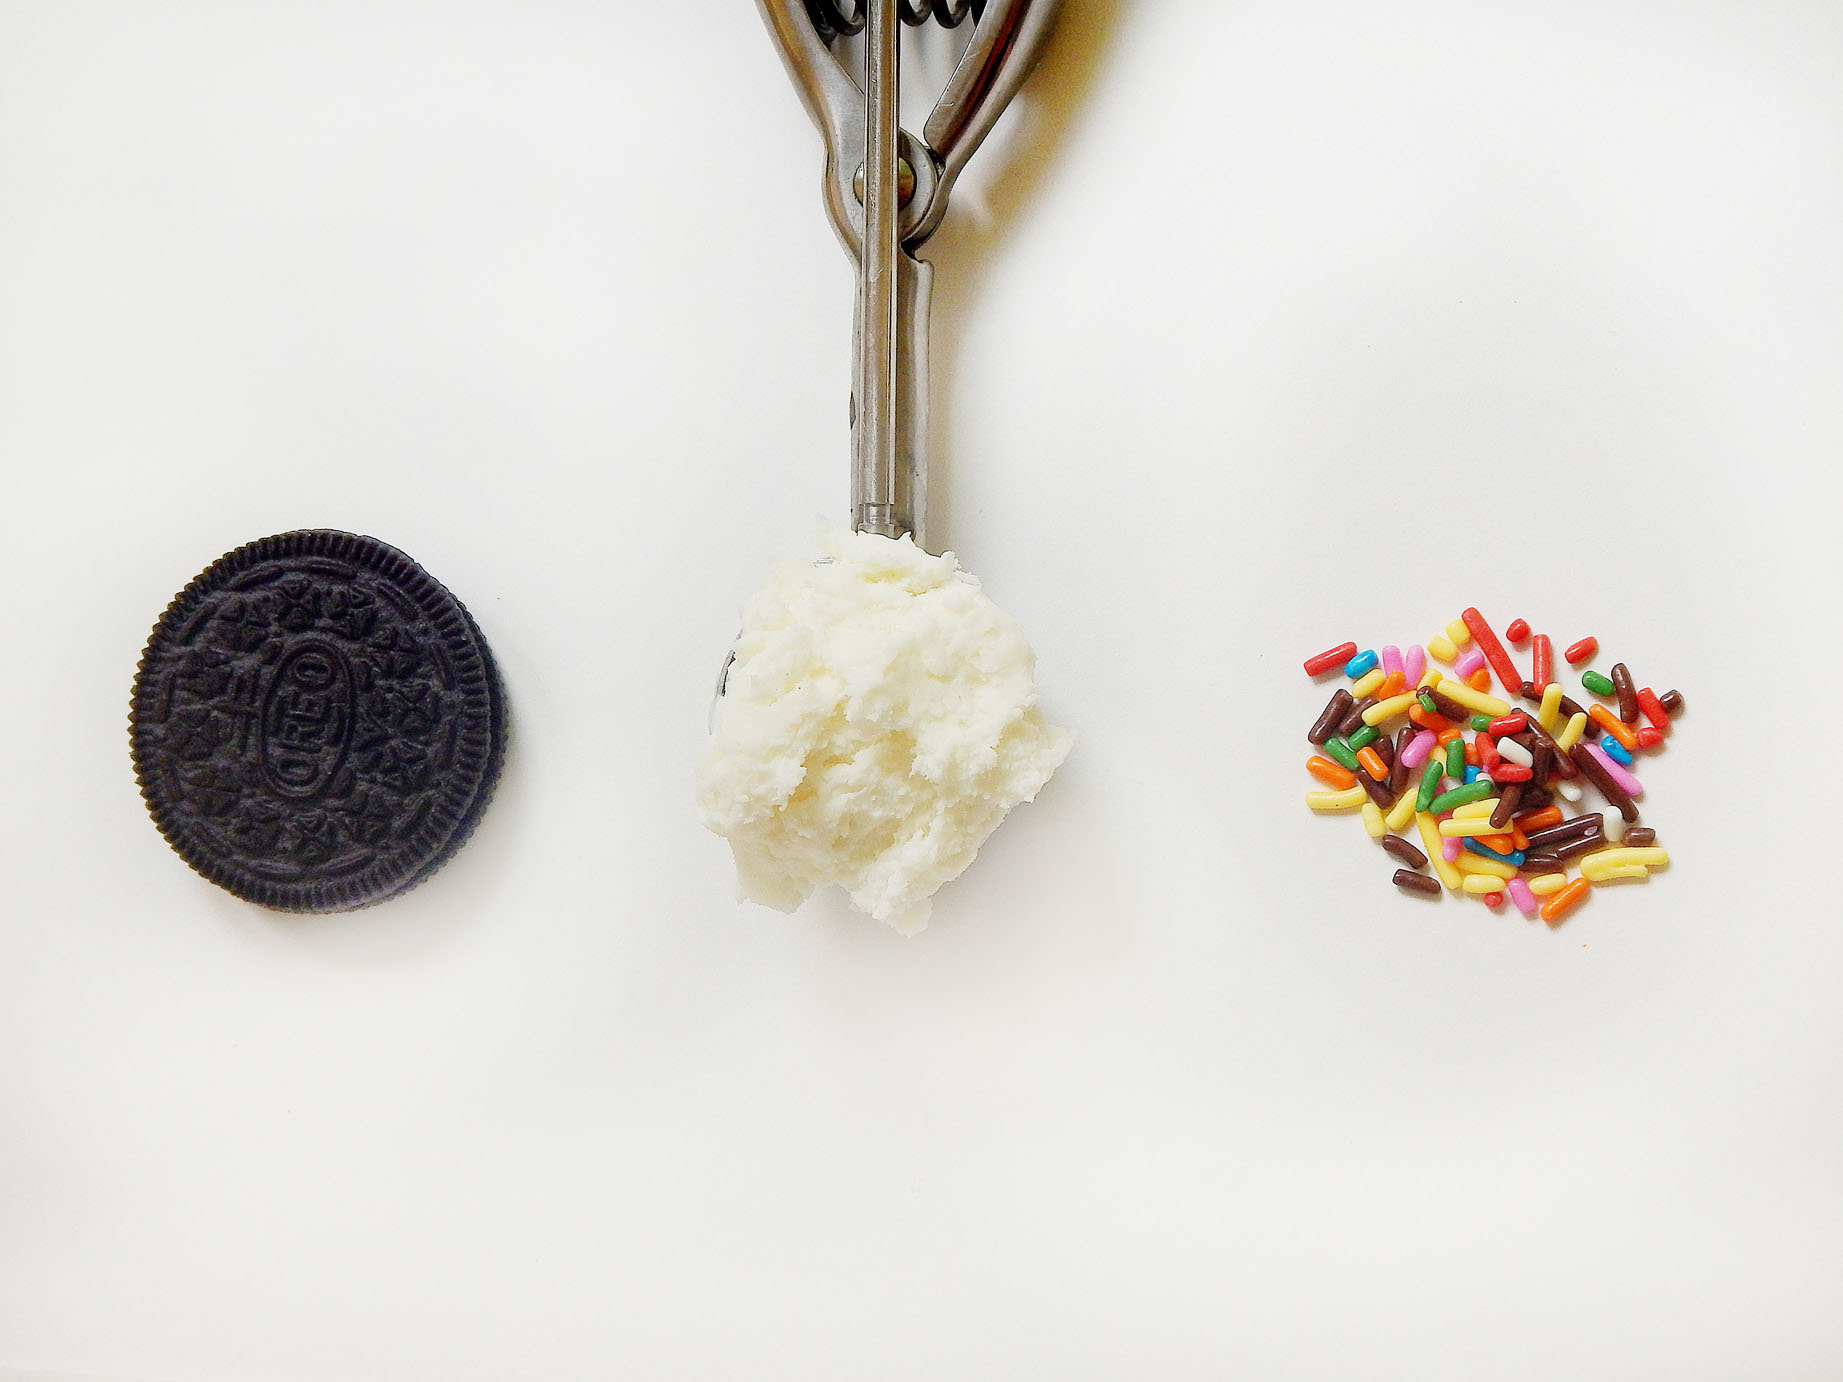 Oreo Cookie, Mini Ice Cream Scoop, Sprinkles